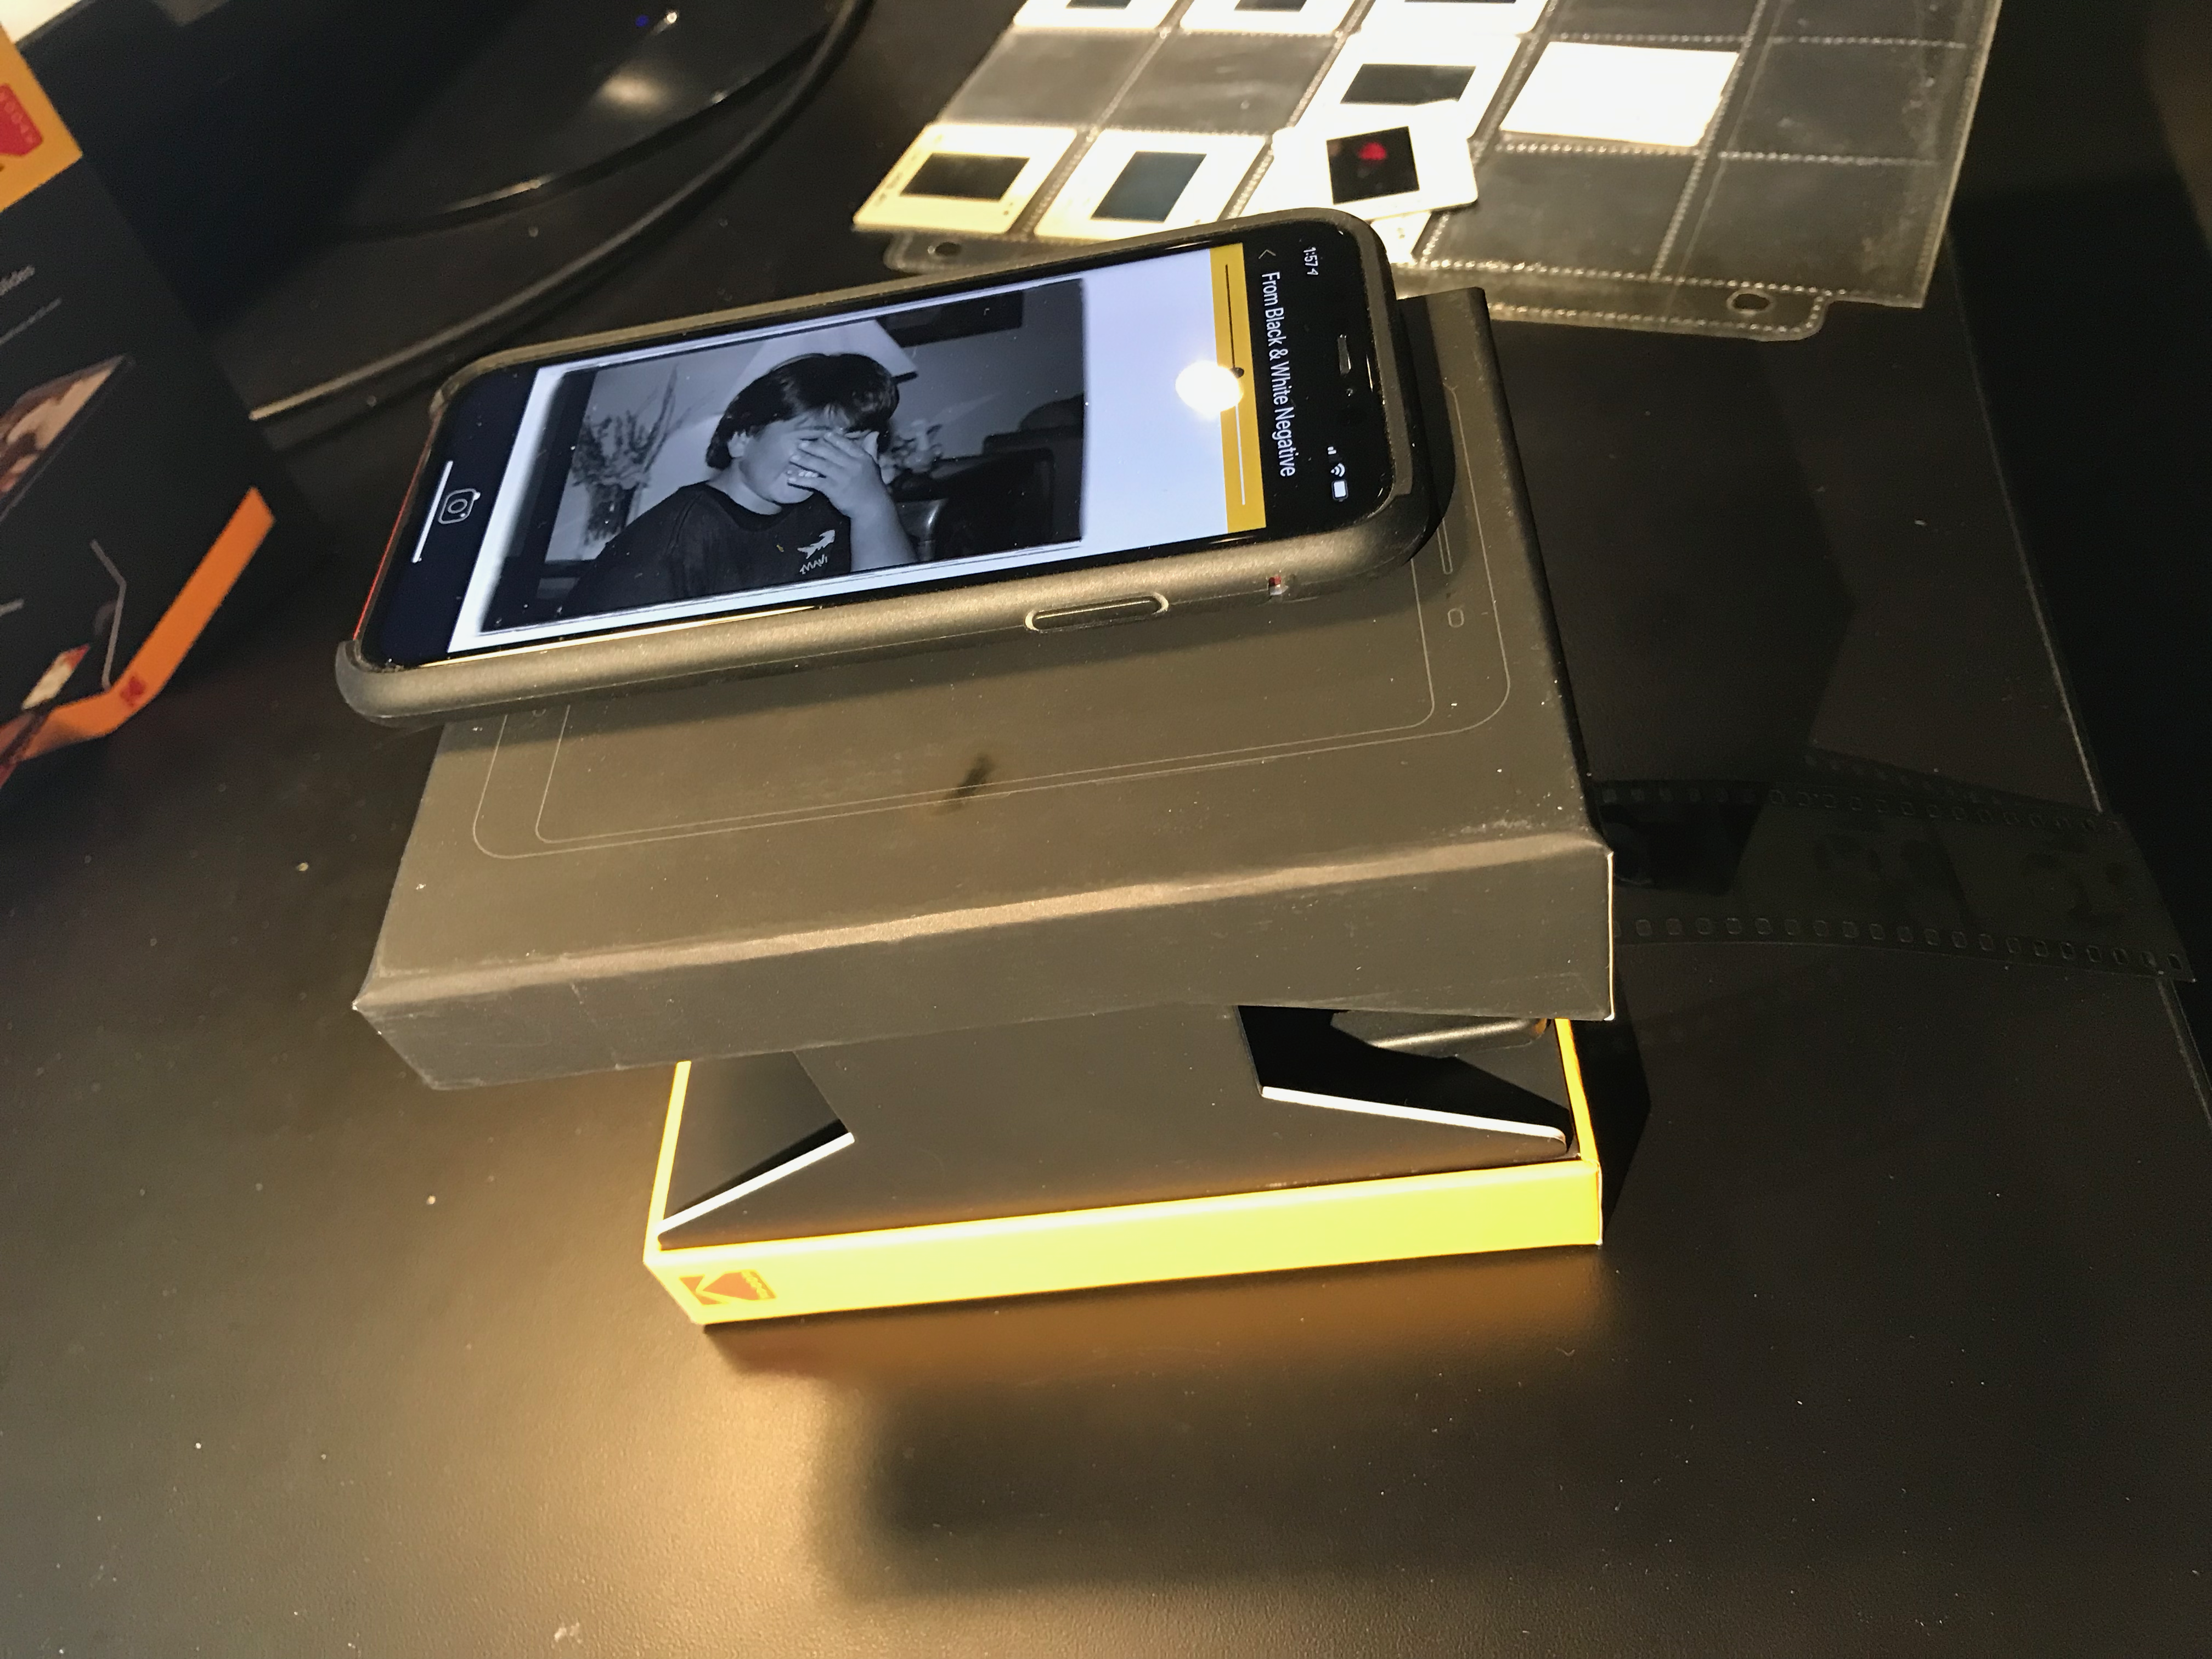 2019-07-25 Kodak Mobile Film Scanner-09 - software using phone as scanner